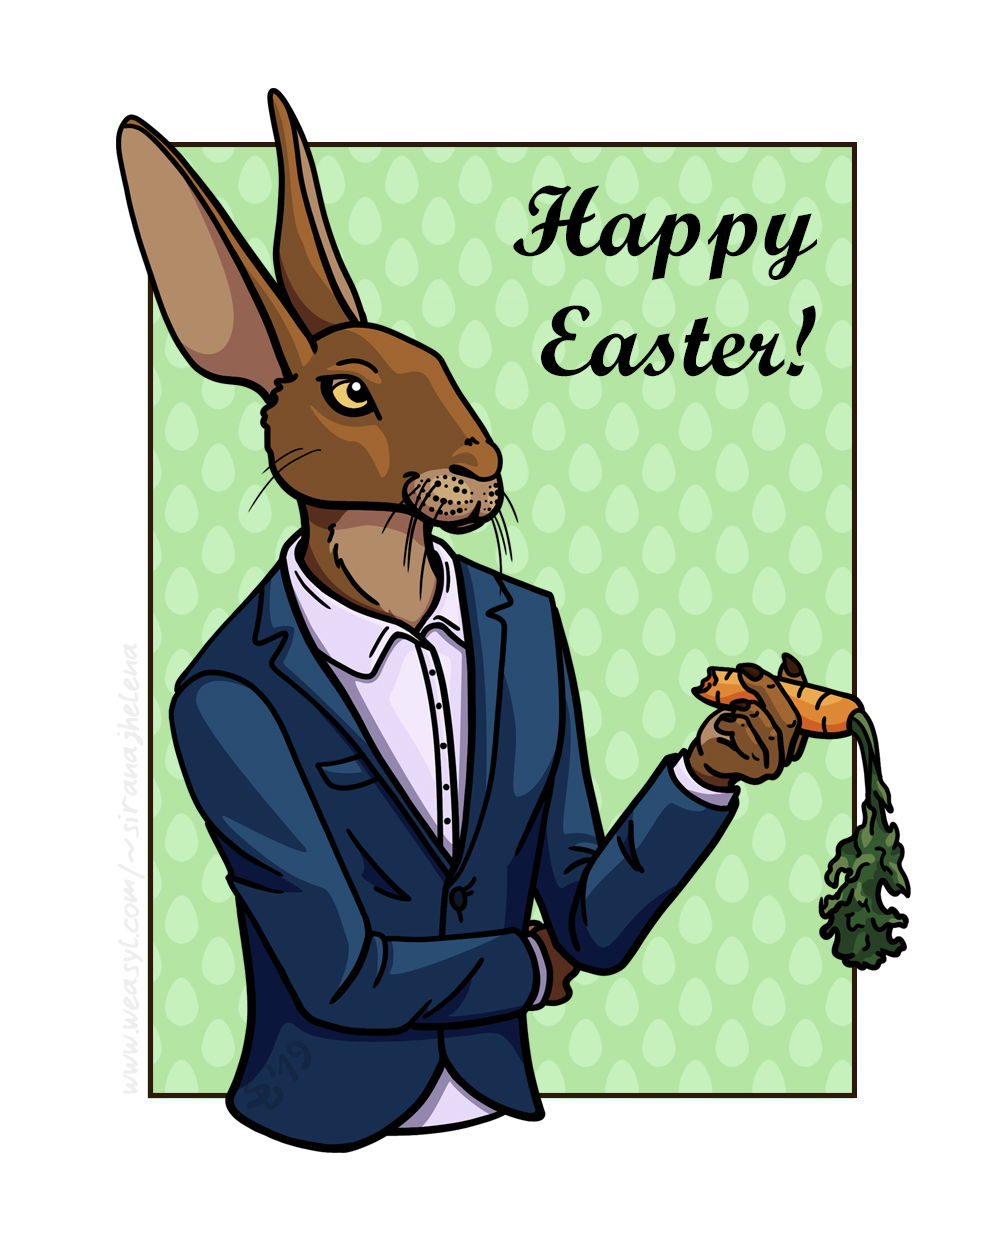 Happy Easter 2019!